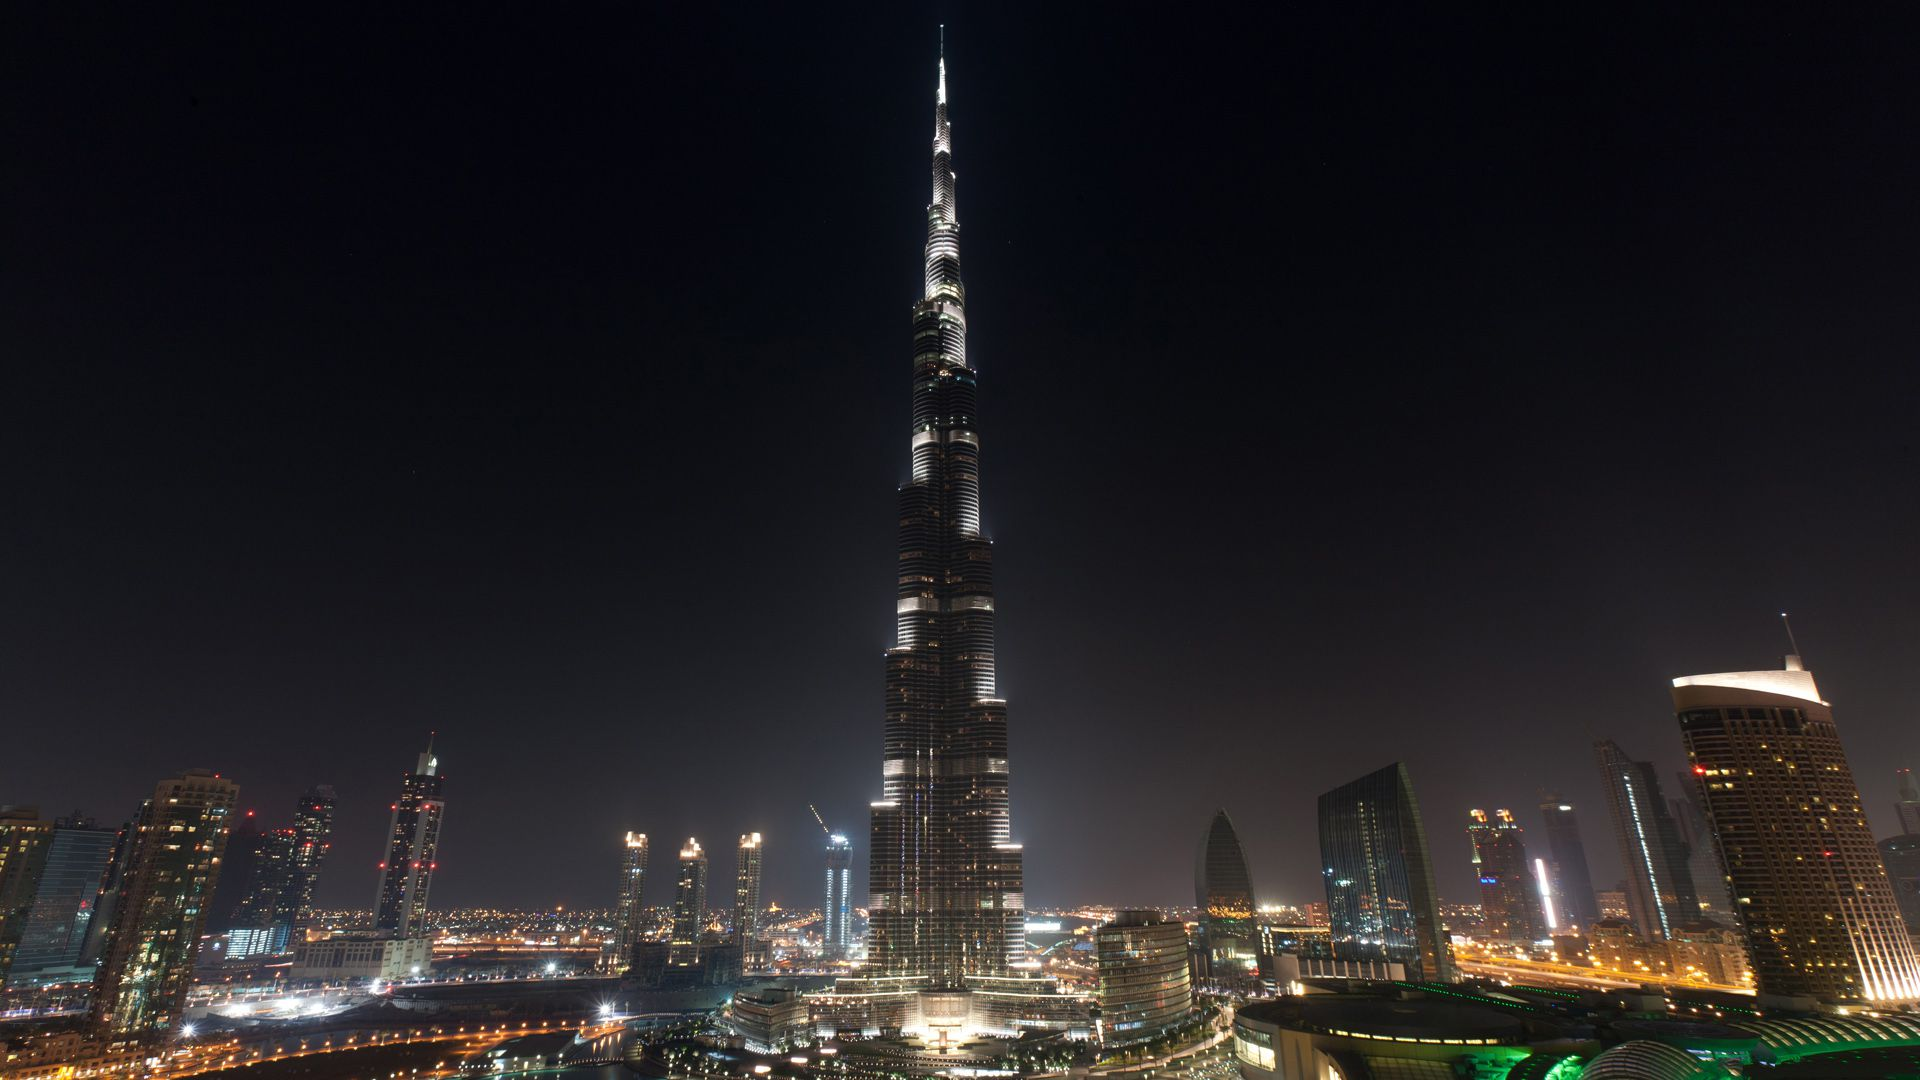 Burj Khalifa aka Burj Dubai Wallpapers  HD Wallpapers 1920x1080